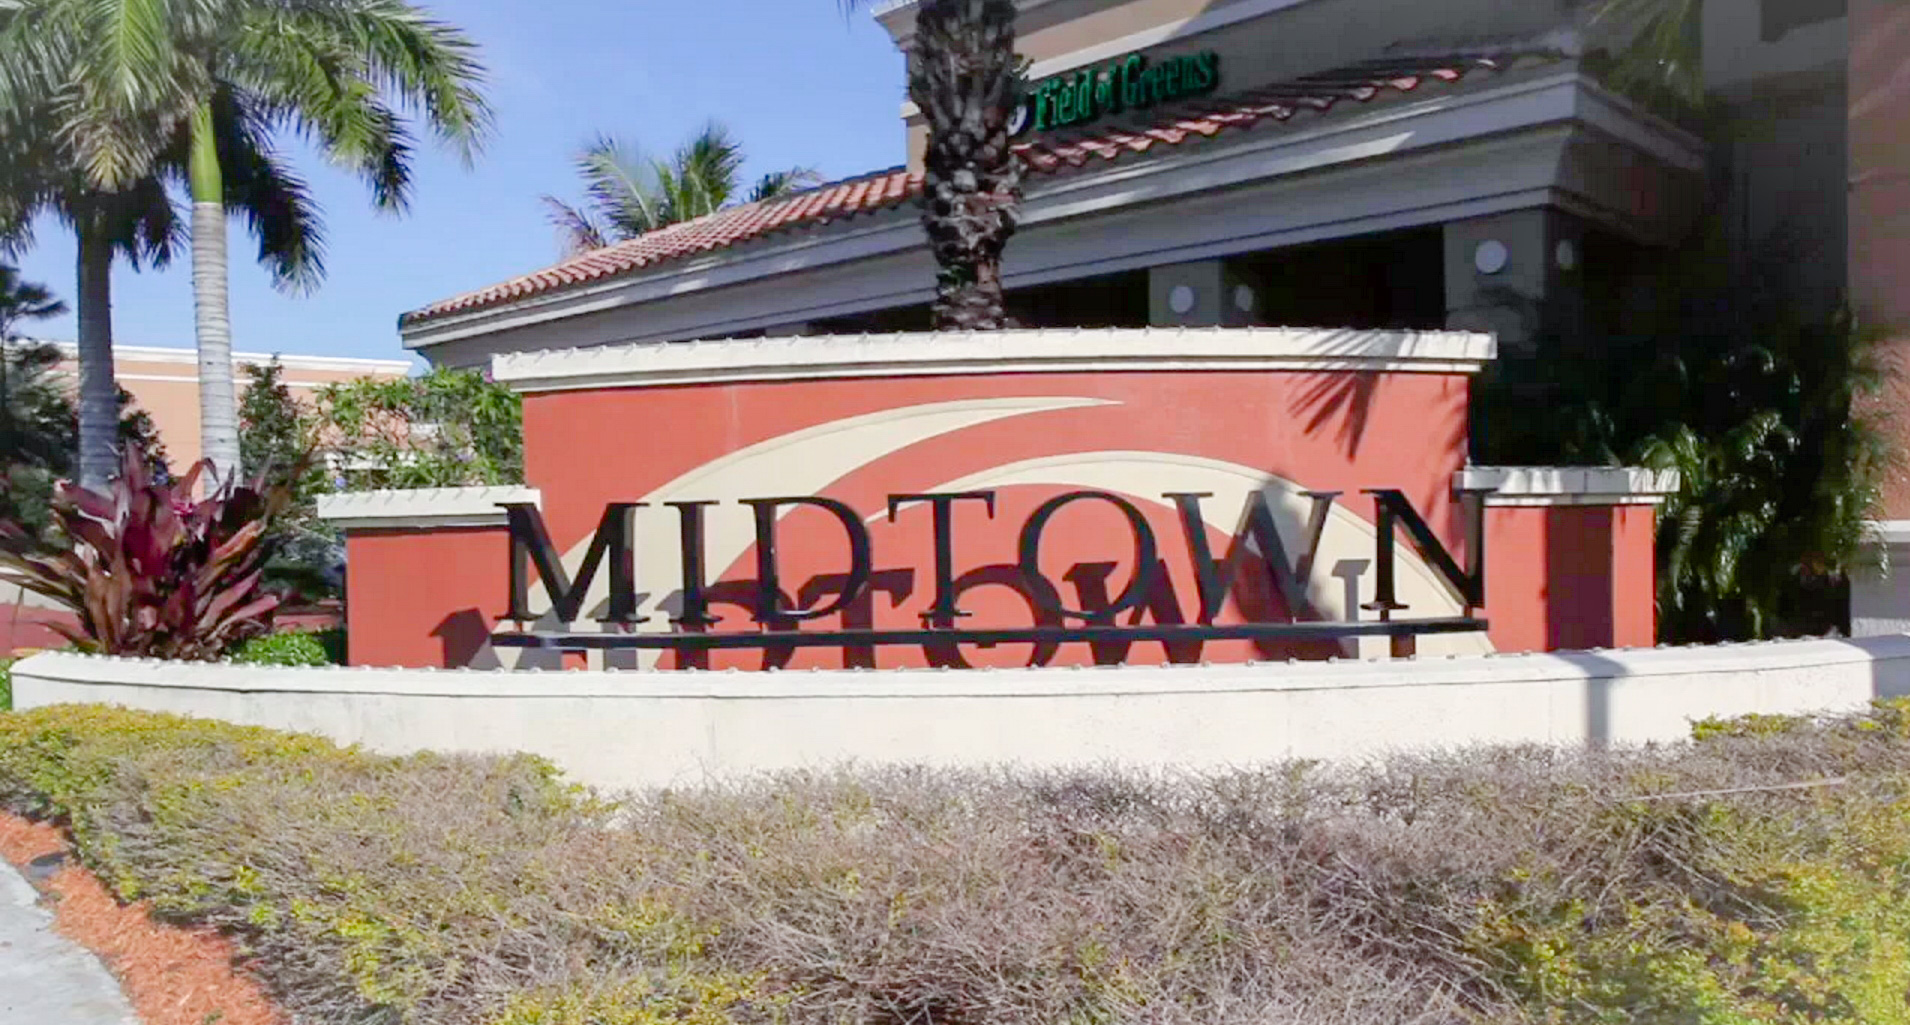 Midtown Homes for Sale in Palm Beach Gardens, FL 33410 community image